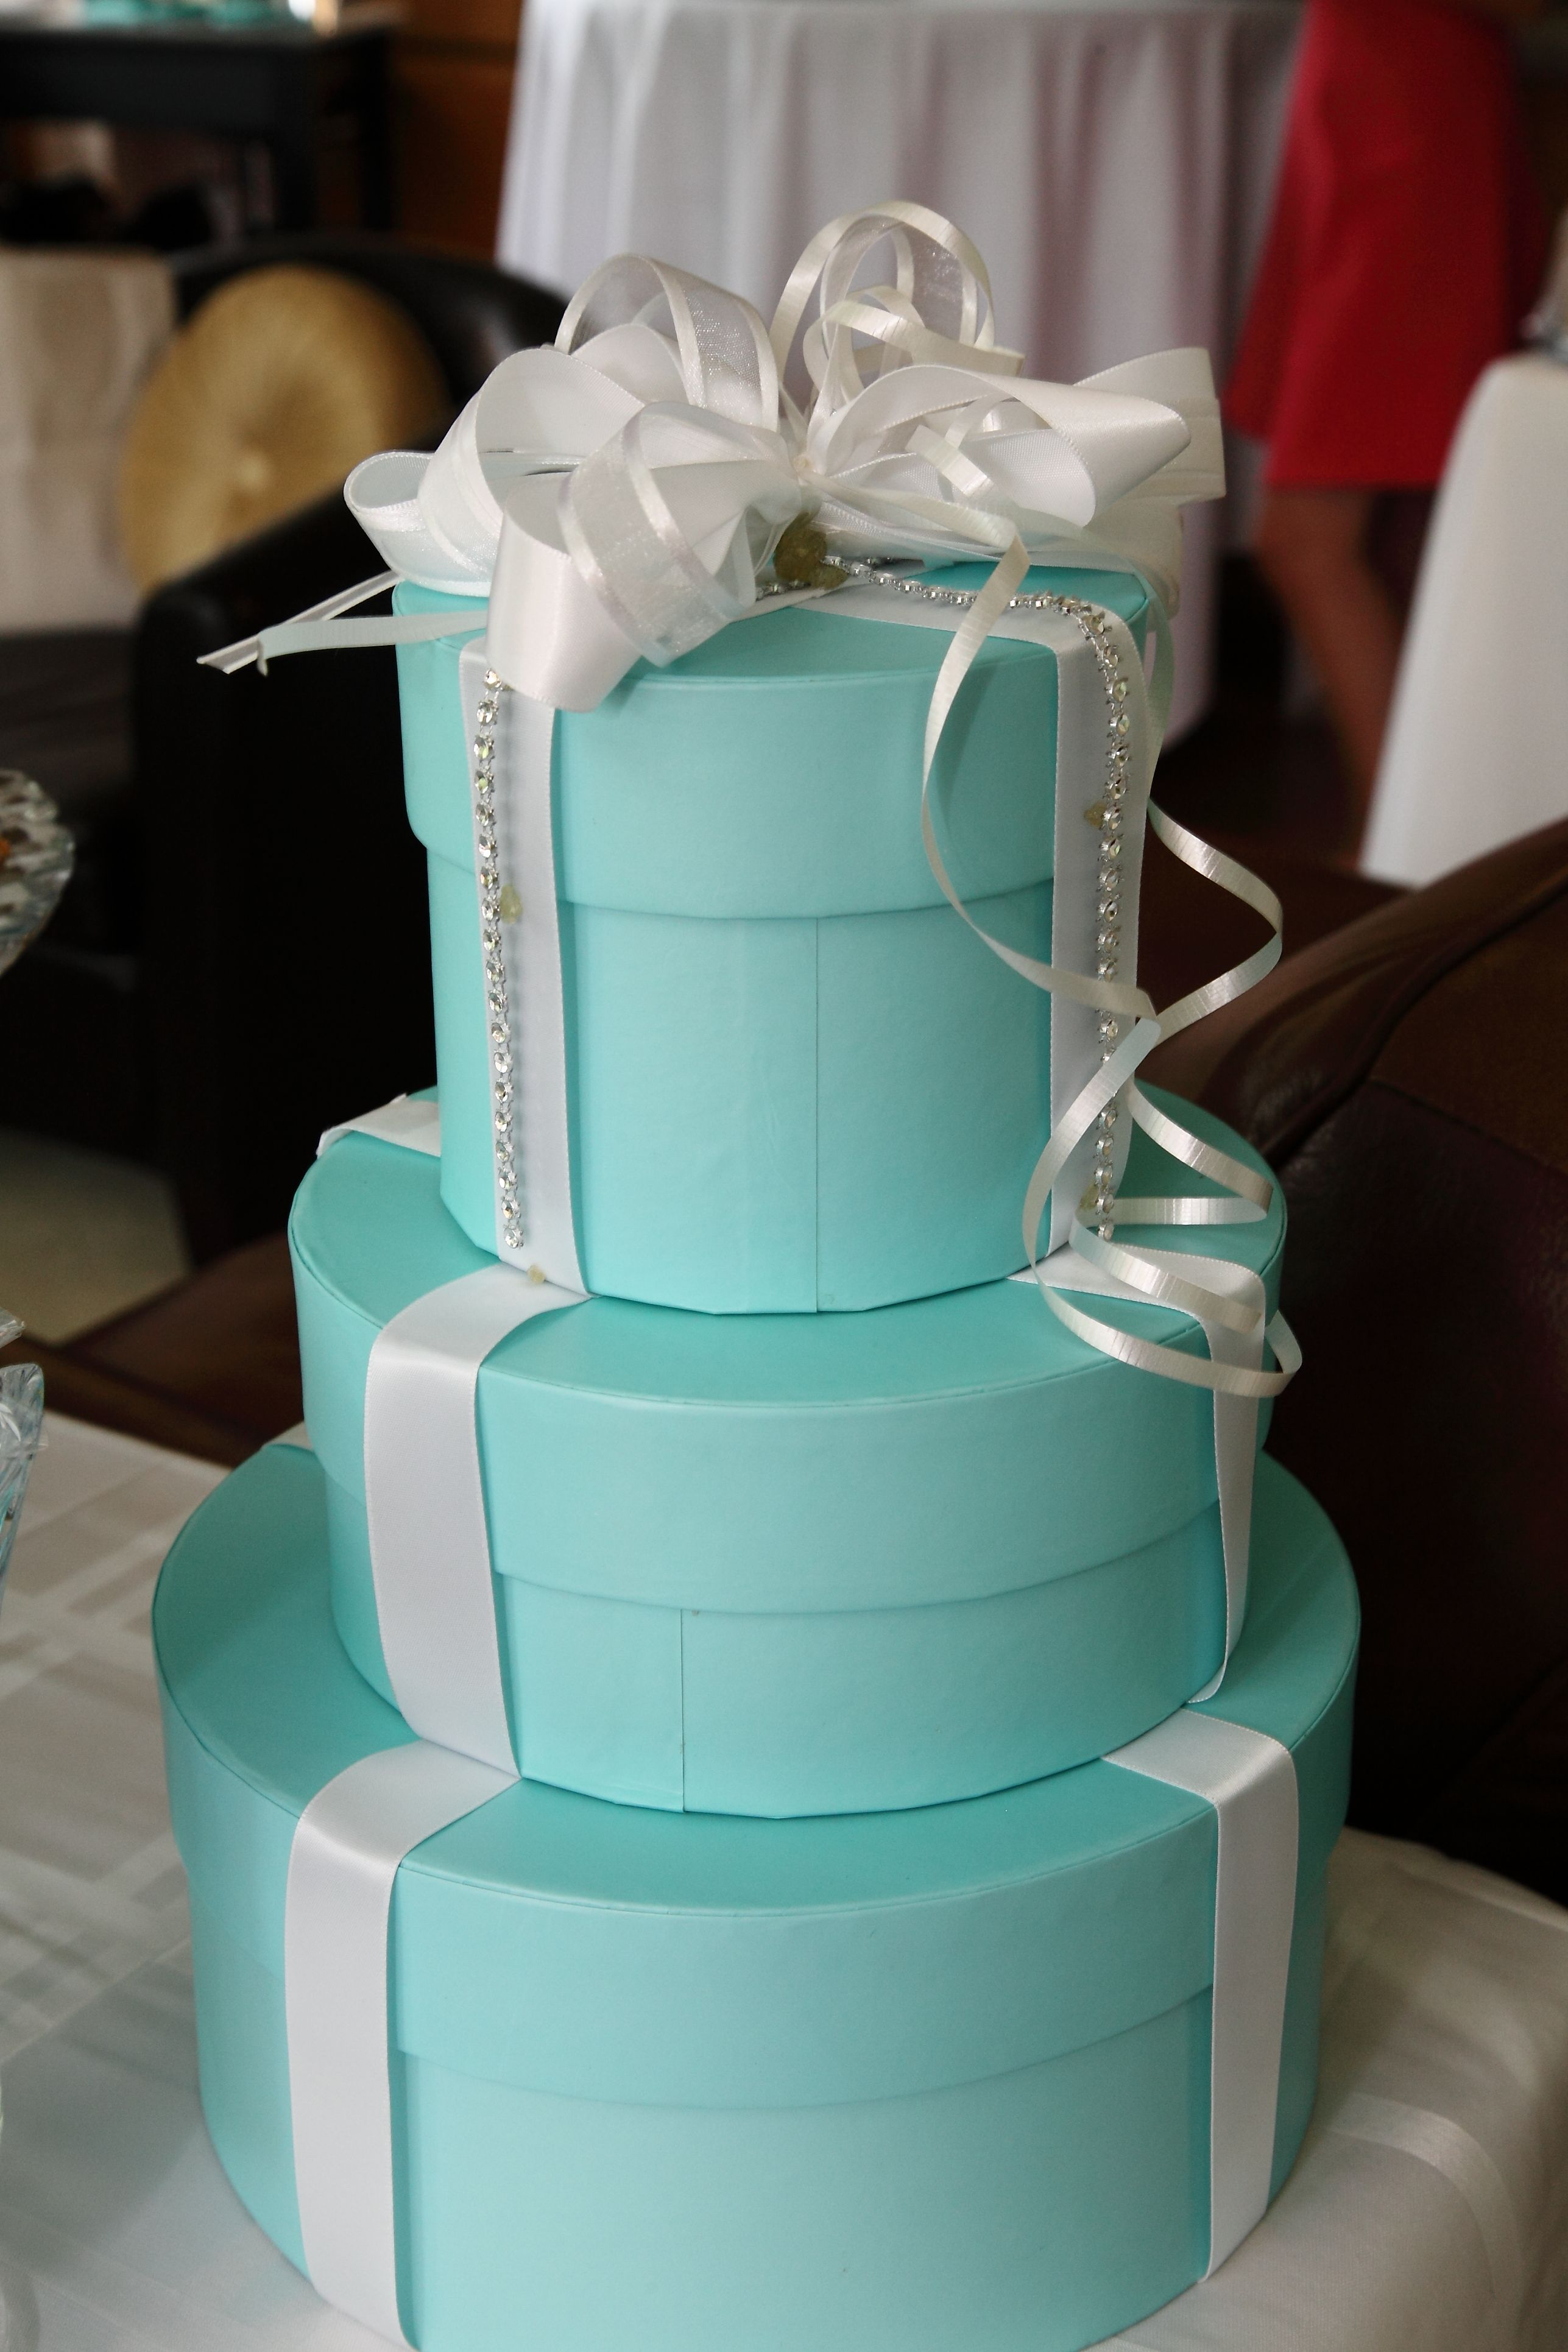 Inside wedding decoration ideas  Tiffany Blue decor boxes LOVE THIS IF GIFTS FOR THE BRIDE WAS